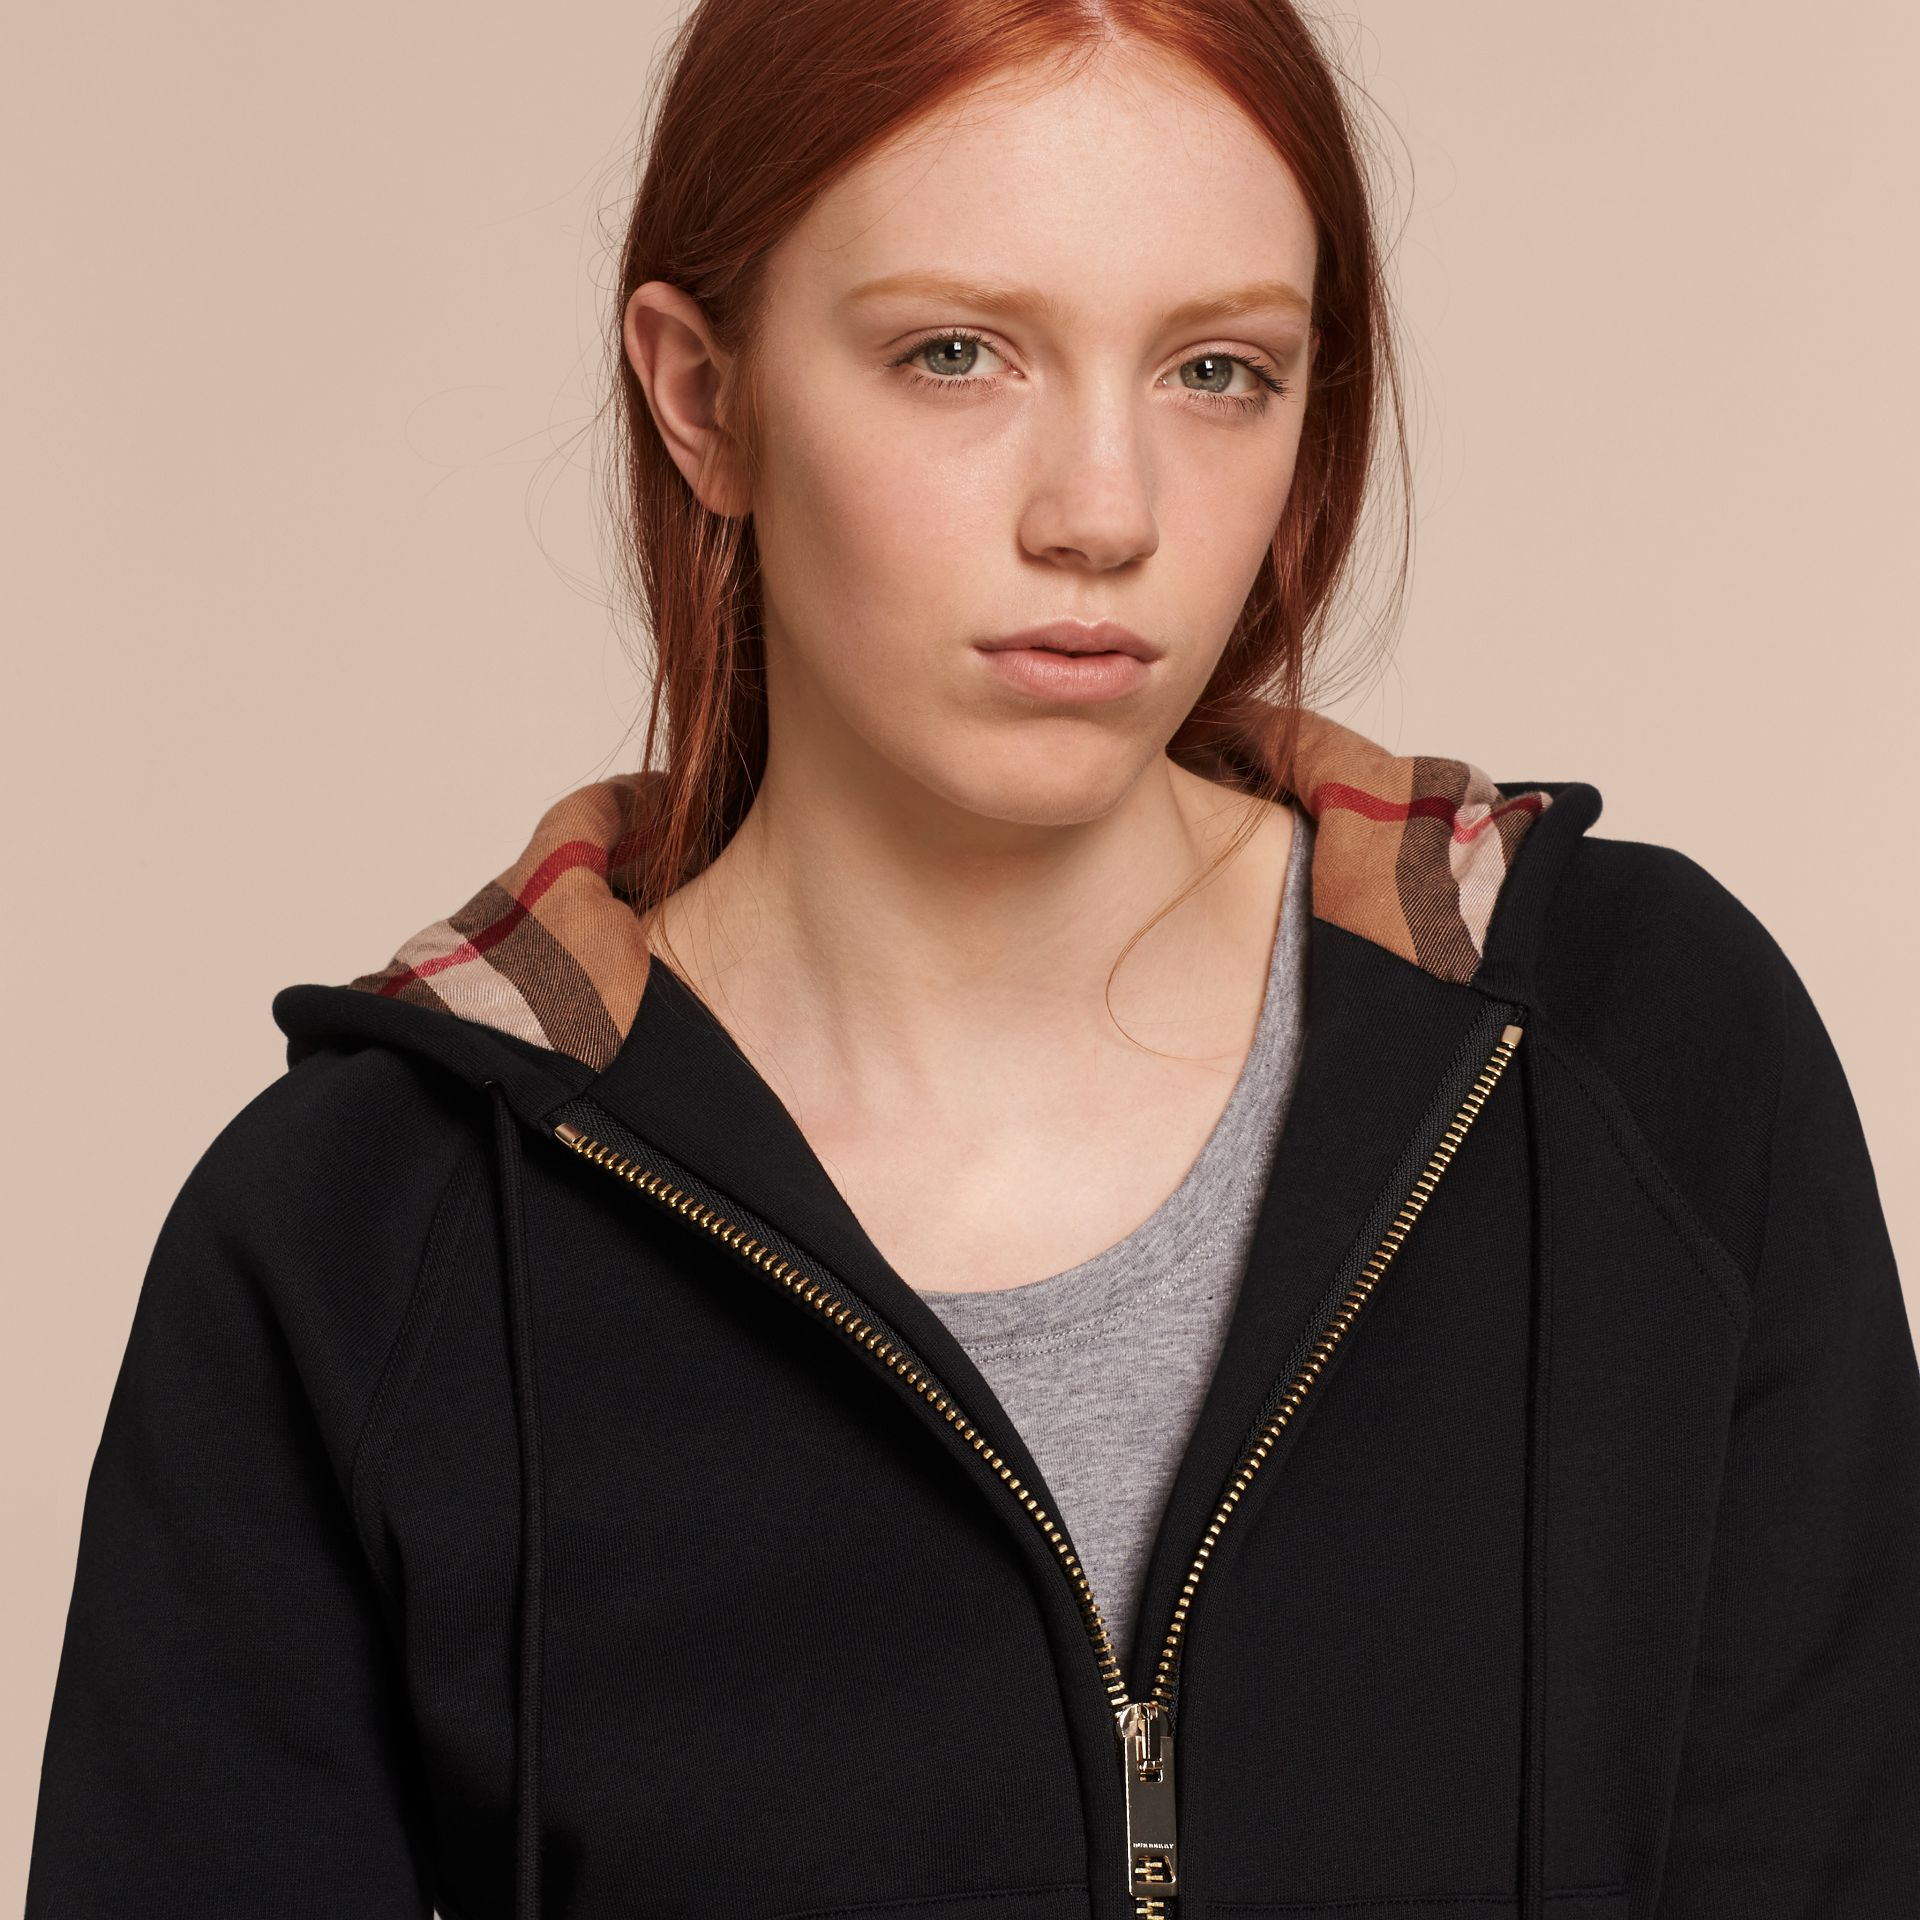 Hooded Zip-front Cotton Blend  Sweatshirt in Black - Women | Burberry - gallery image 5